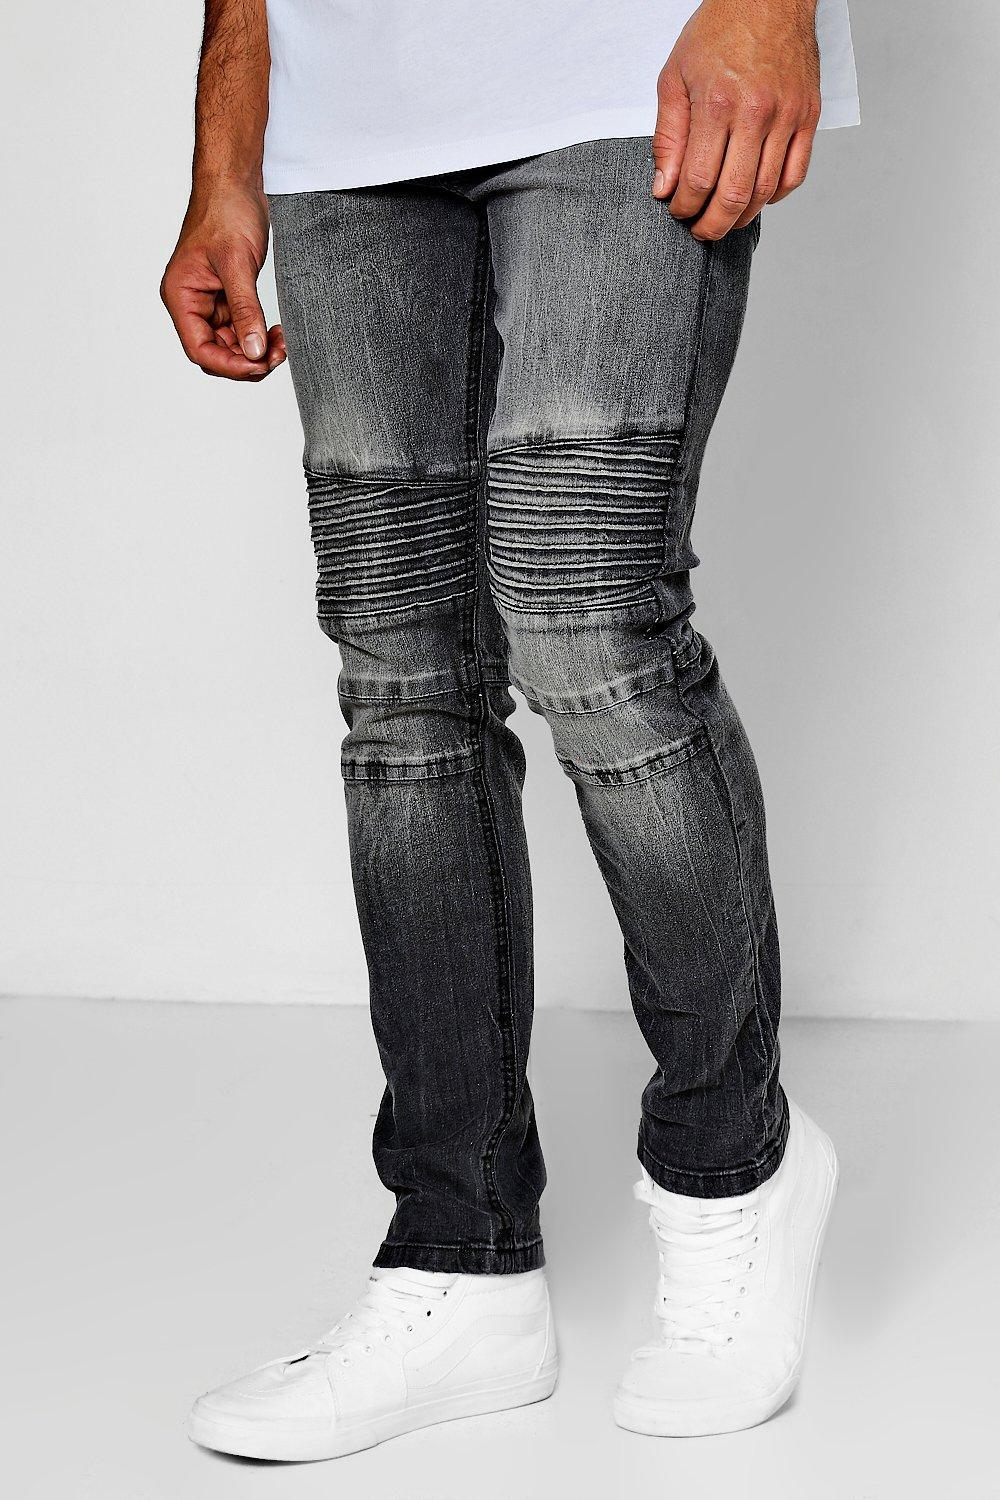 ef21a0a54e58 Lyst - Boohoo Charcoal Wash Slim Fit Biker Jeans in Gray for Men